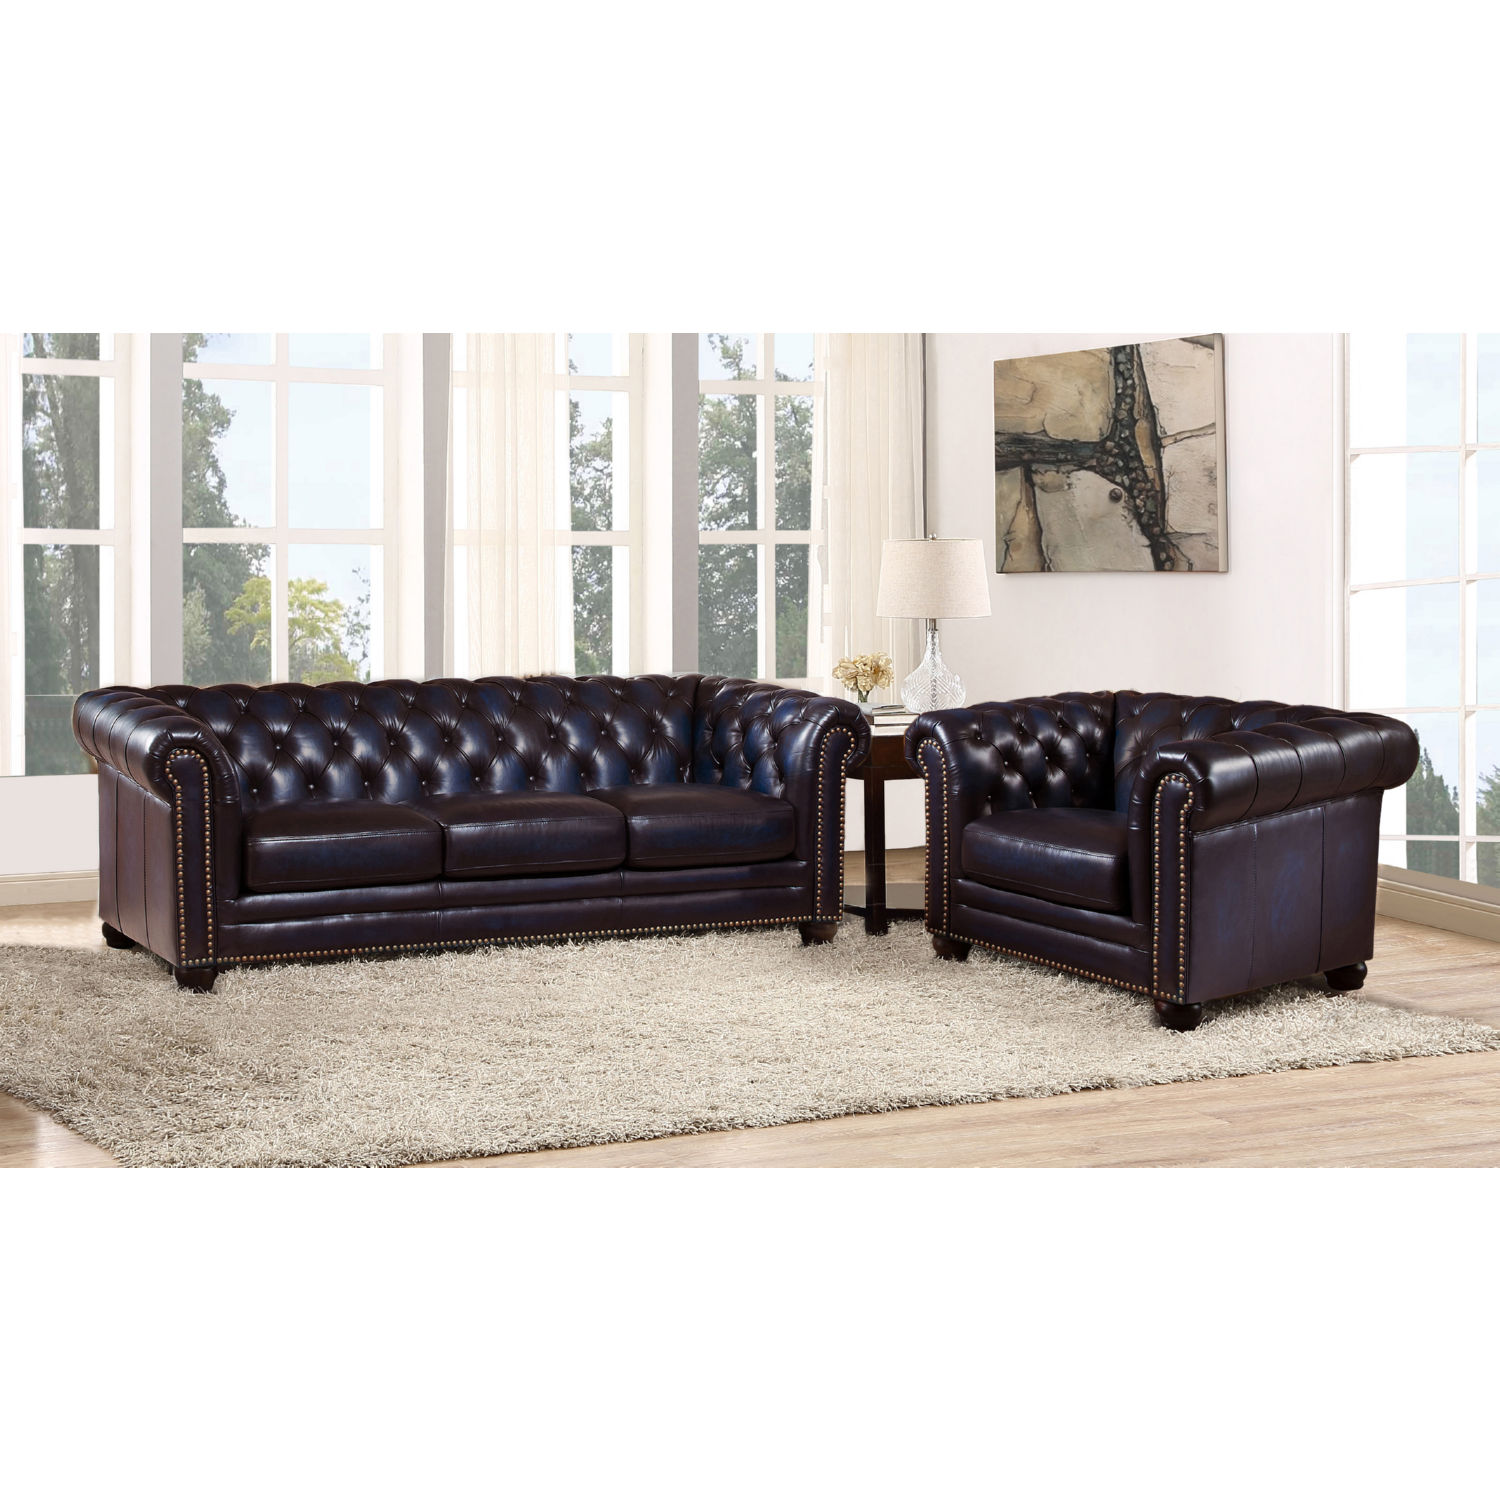 Pleasant Dynasty Leather 2Pc Set Chesterfield Sofa Armchair In Tufted Navy Blue W Nailheads By Hydeline Leather Machost Co Dining Chair Design Ideas Machostcouk